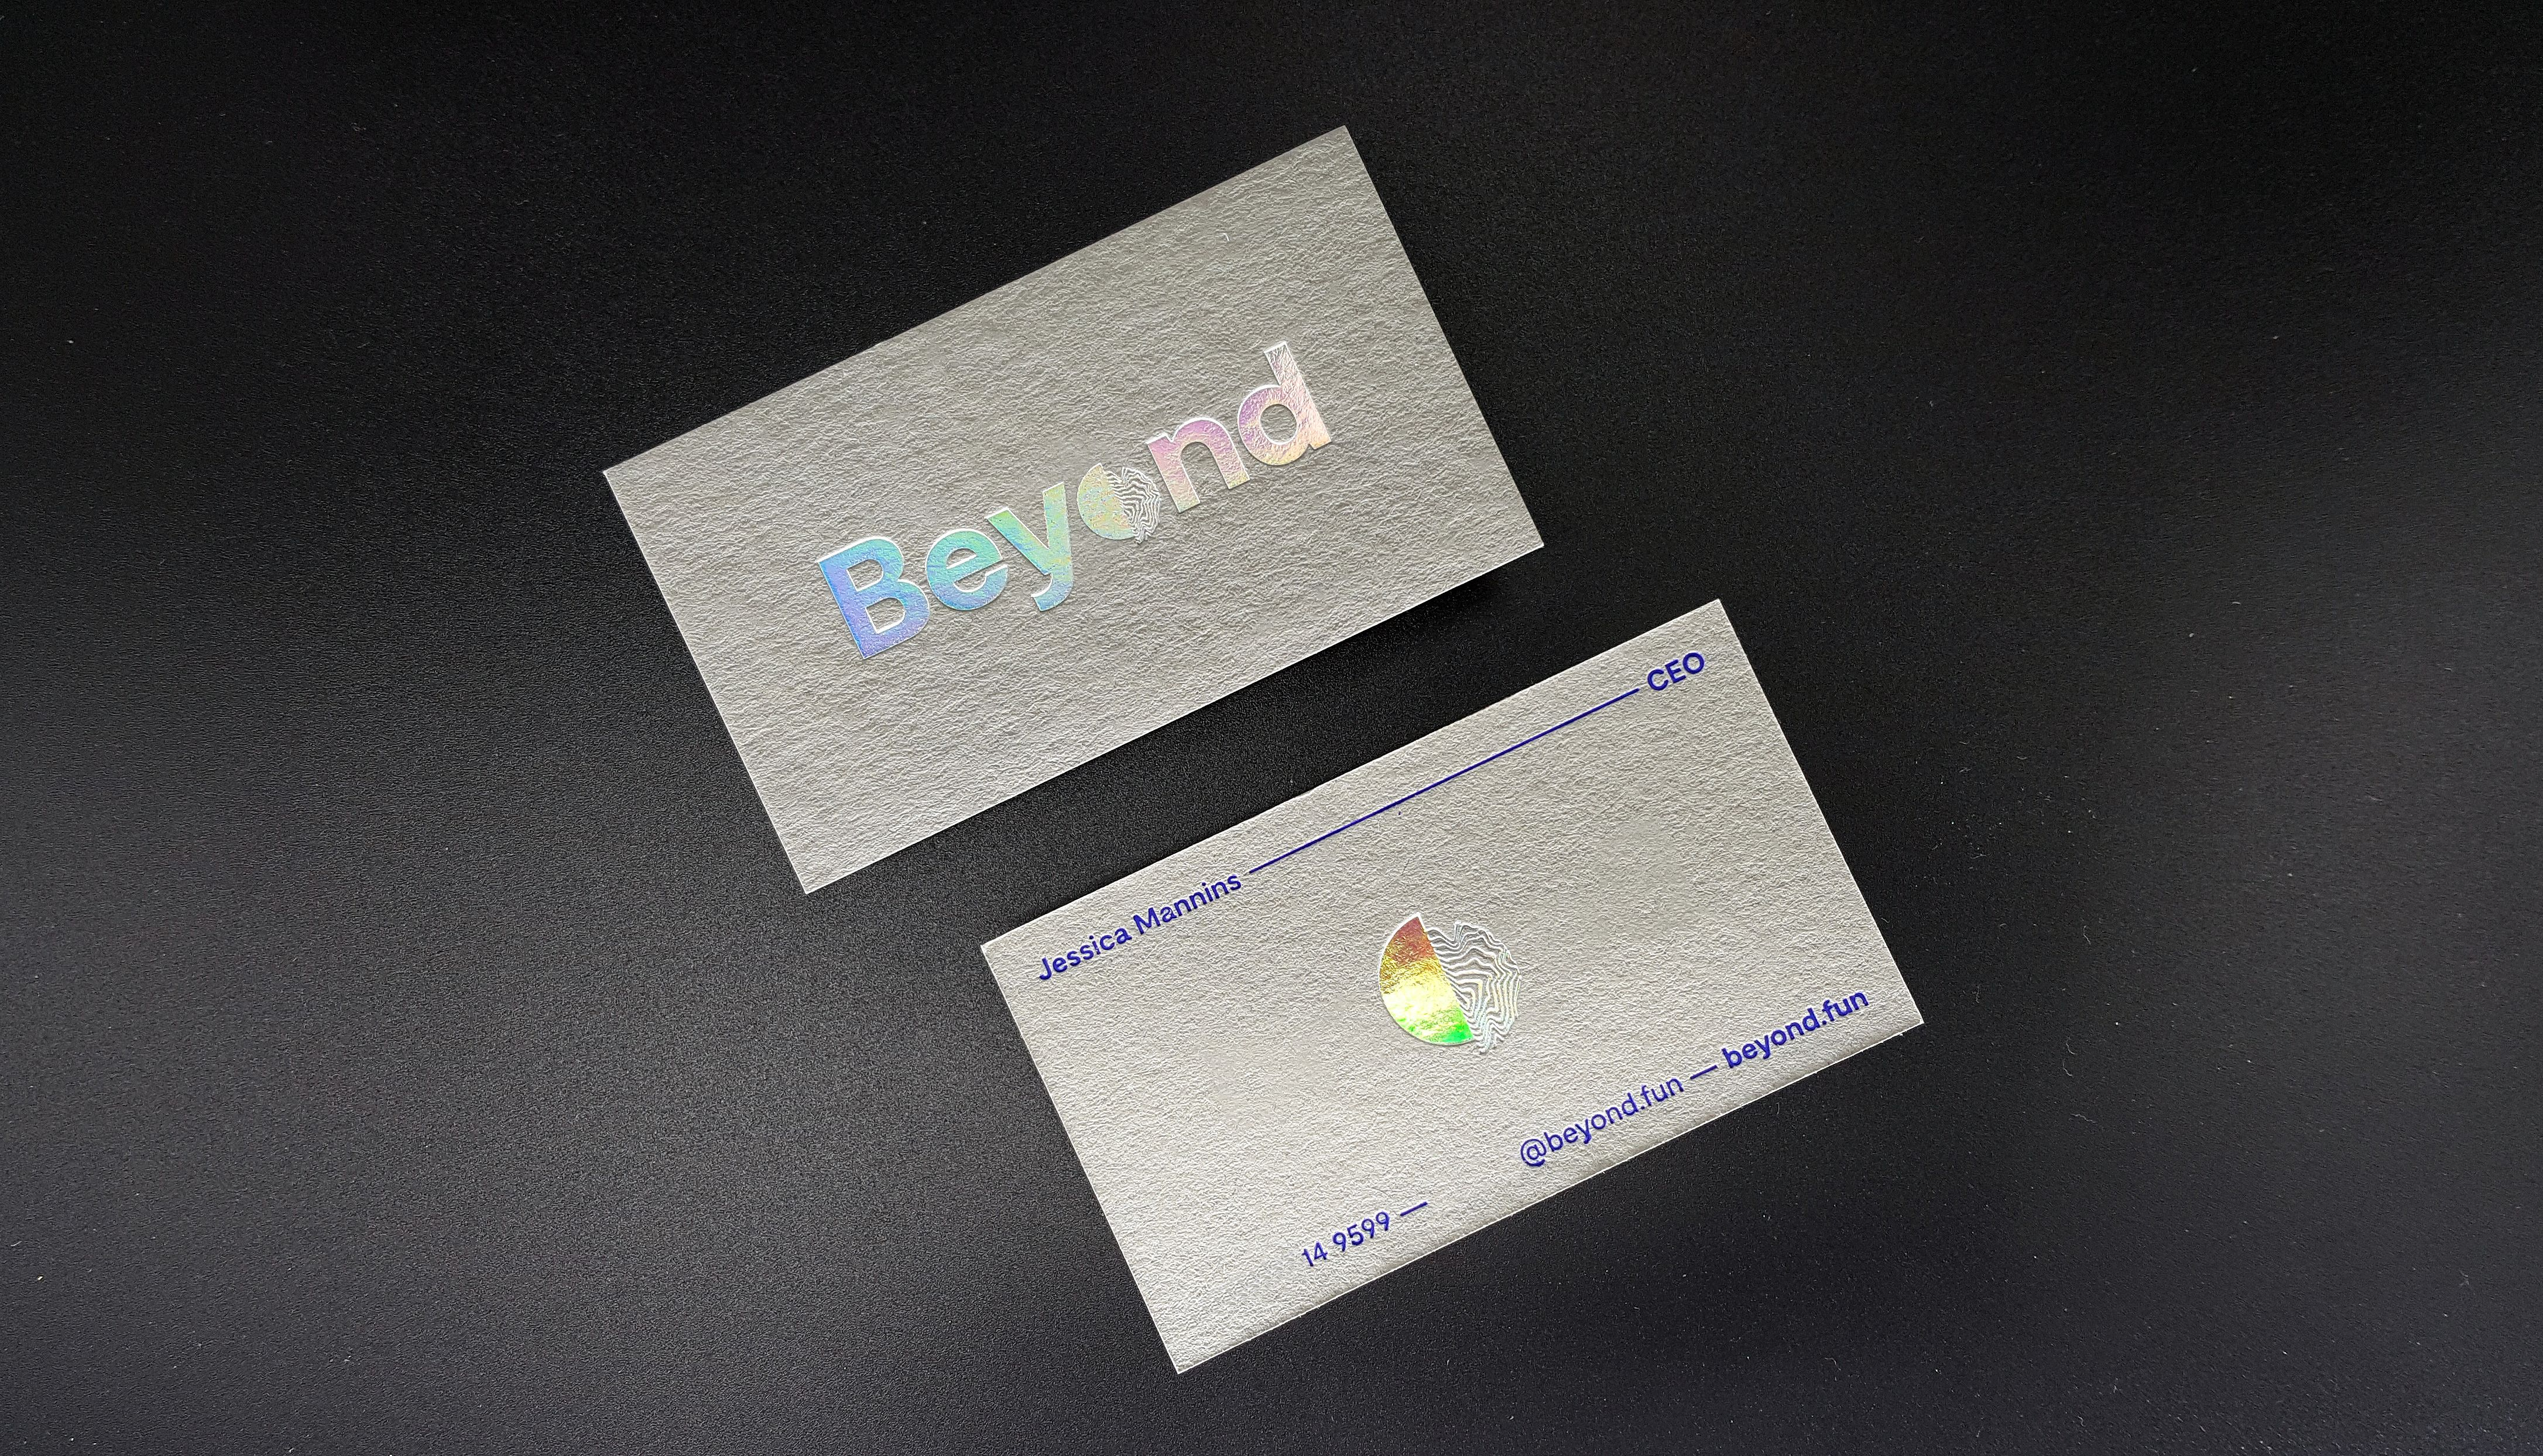 Gray Business Cards Grey Cotton Business Cards Luxury Business Cards Personal Business Cards